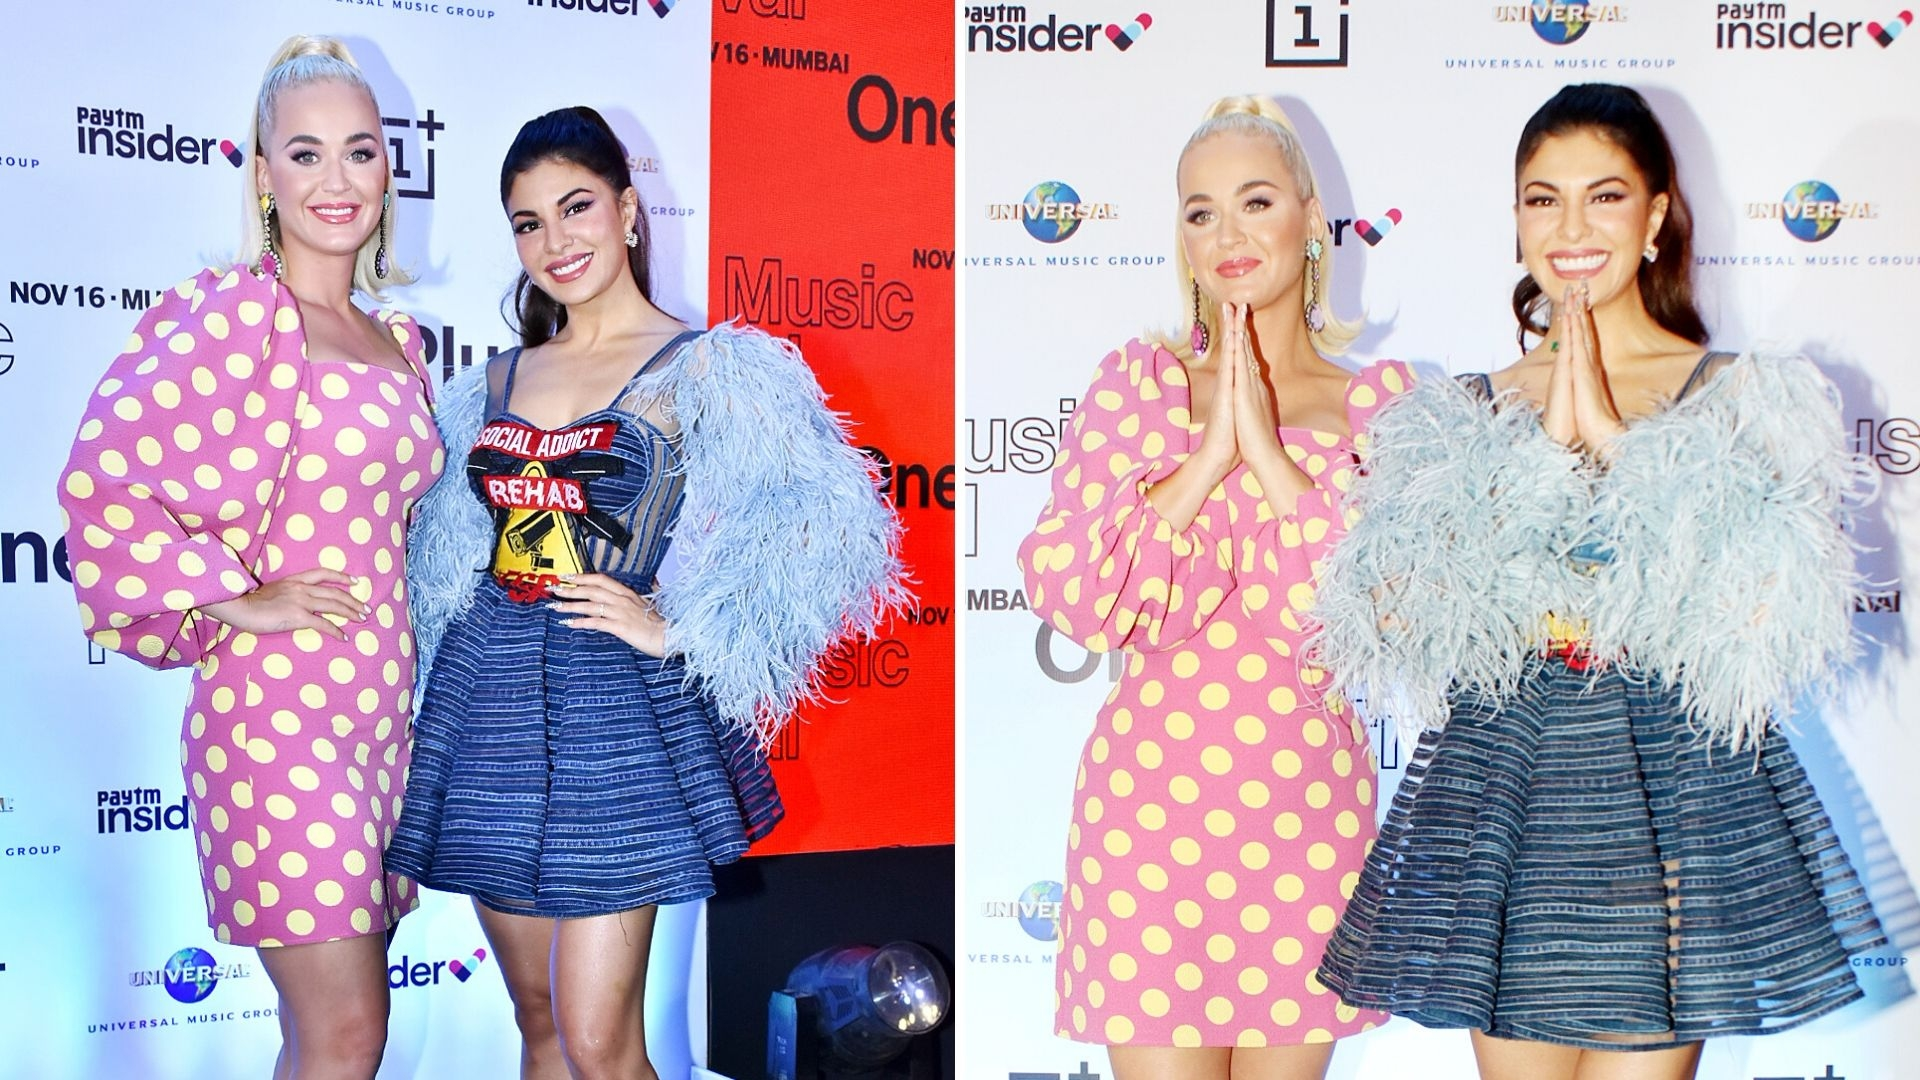 In Pics: Jacqueline Fernandez Welcomes Katy Perry to India